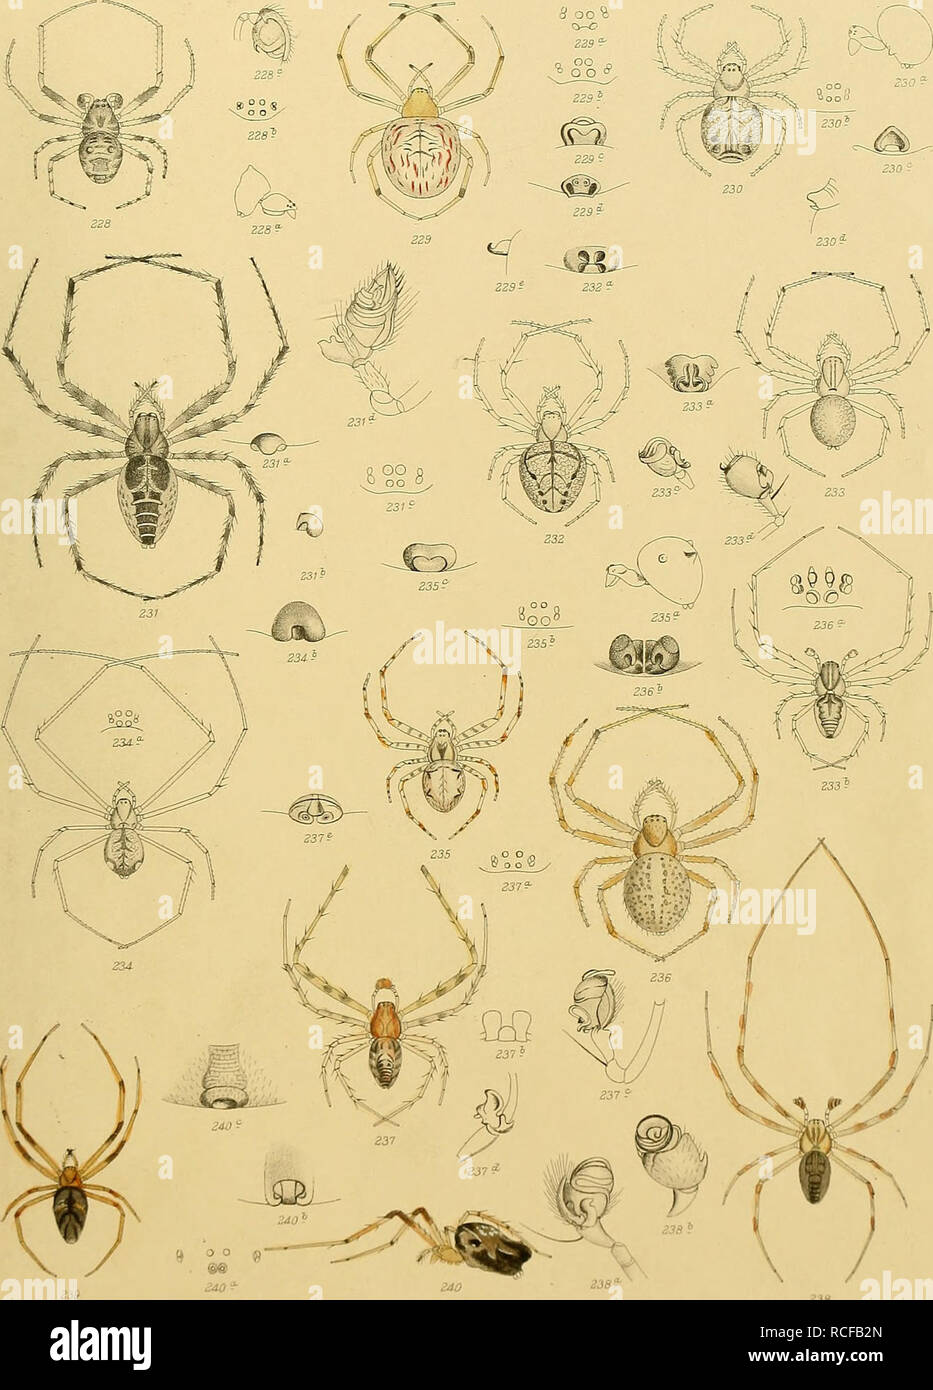 . Die spinnen Amerikas ... Spiders; Entomology. Bd. R^ Tab. XVI. Please note that these images are extracted from scanned page images that may have been digitally enhanced for readability - coloration and appearance of these illustrations may not perfectly resemble the original work.. Keyserling, Eugen, Graf von, 1833-1889; Marx, George, 1838-1895. Nürnberg, Verlag von Bauer & Raspe (E. Kuster) Stock Photo